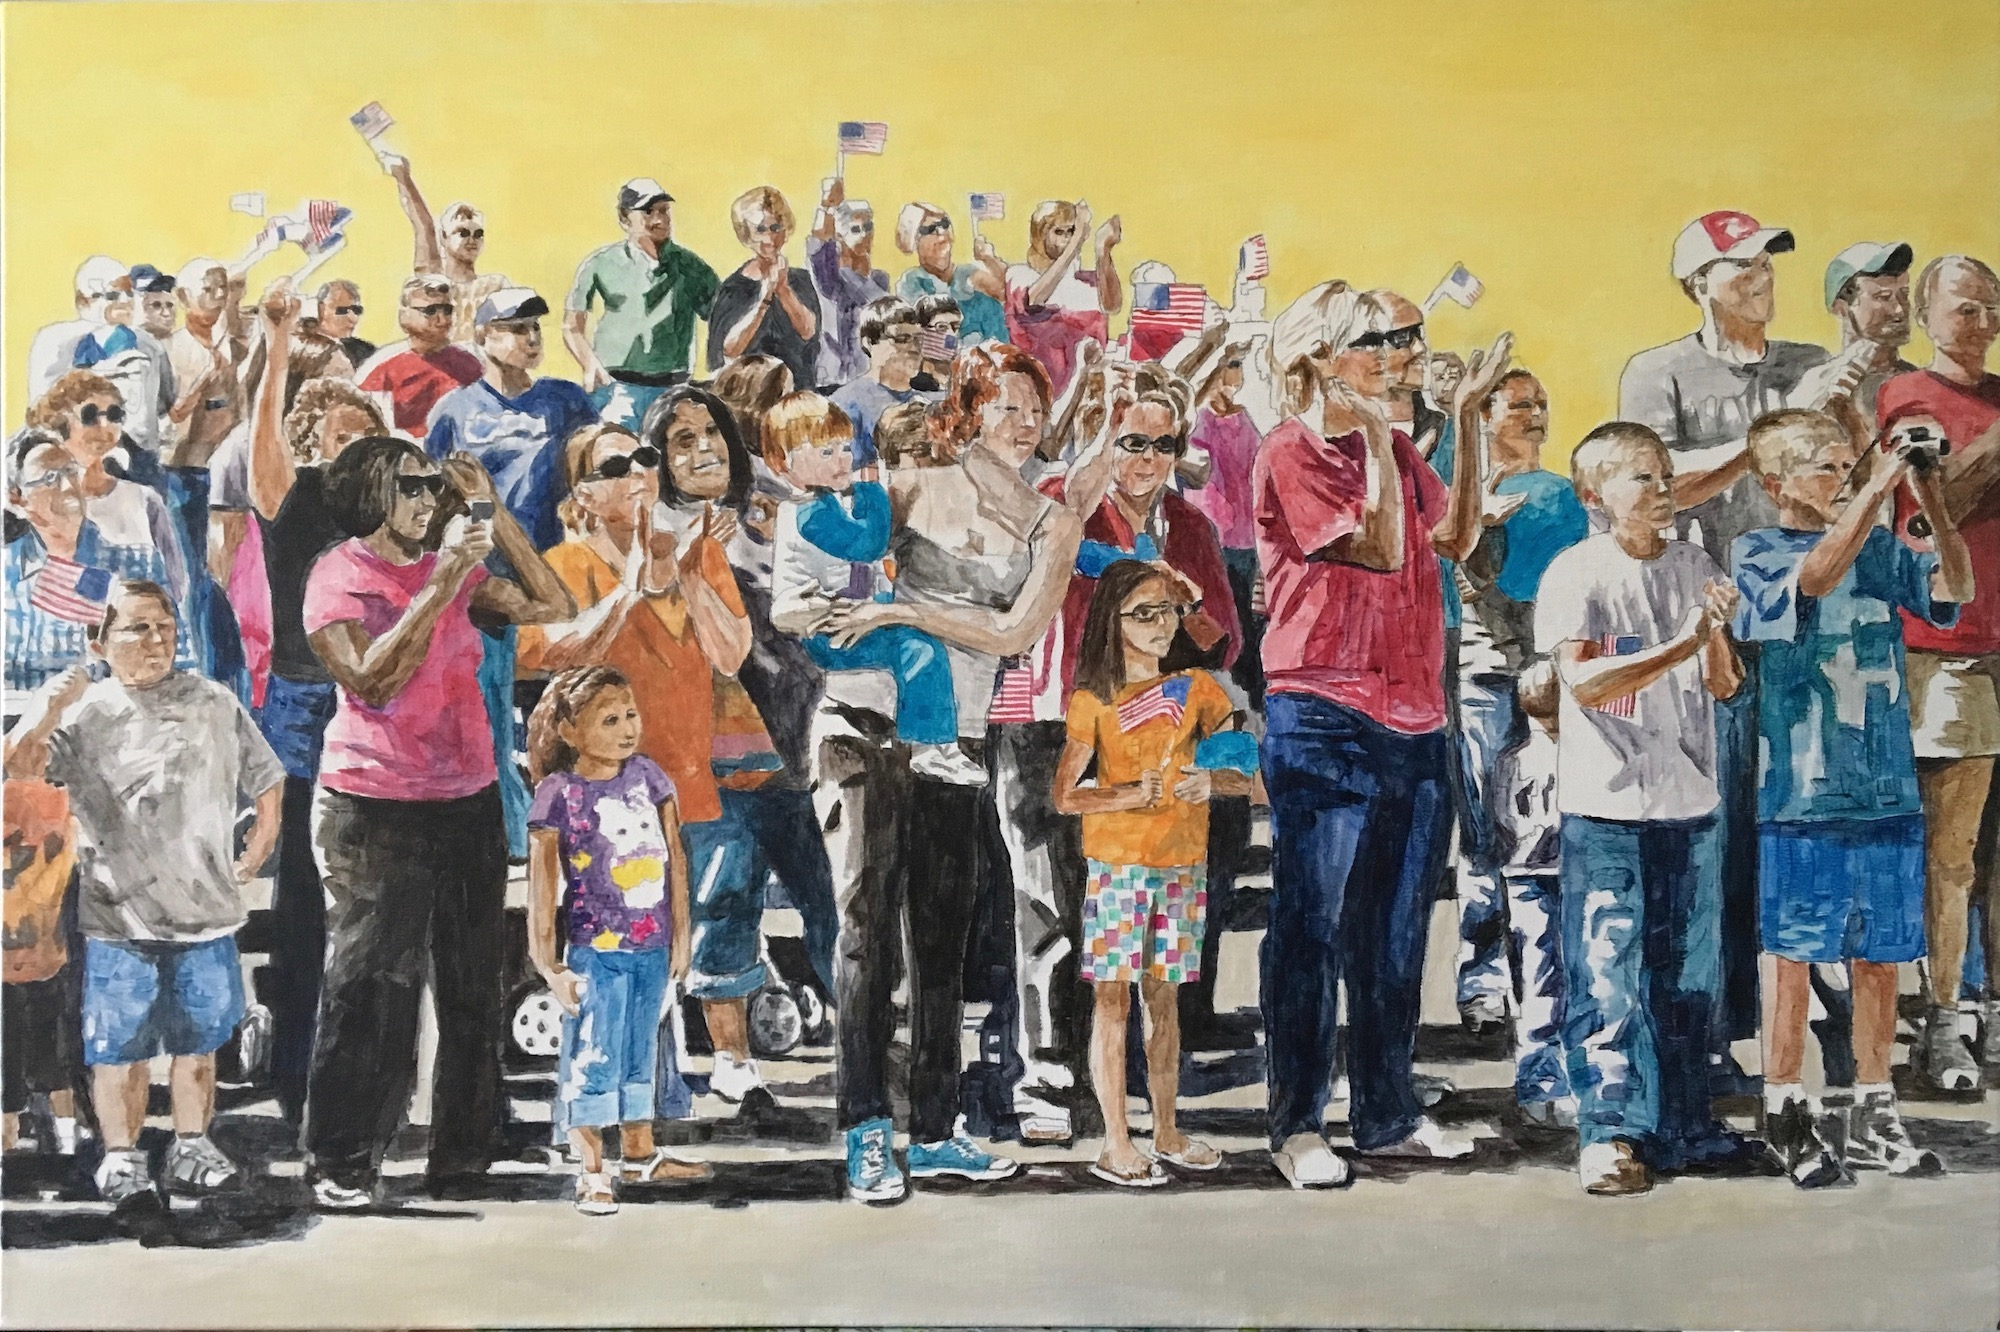 Parade Crowd 2, 2016, acrylic on canvas, 24 x 36 inches